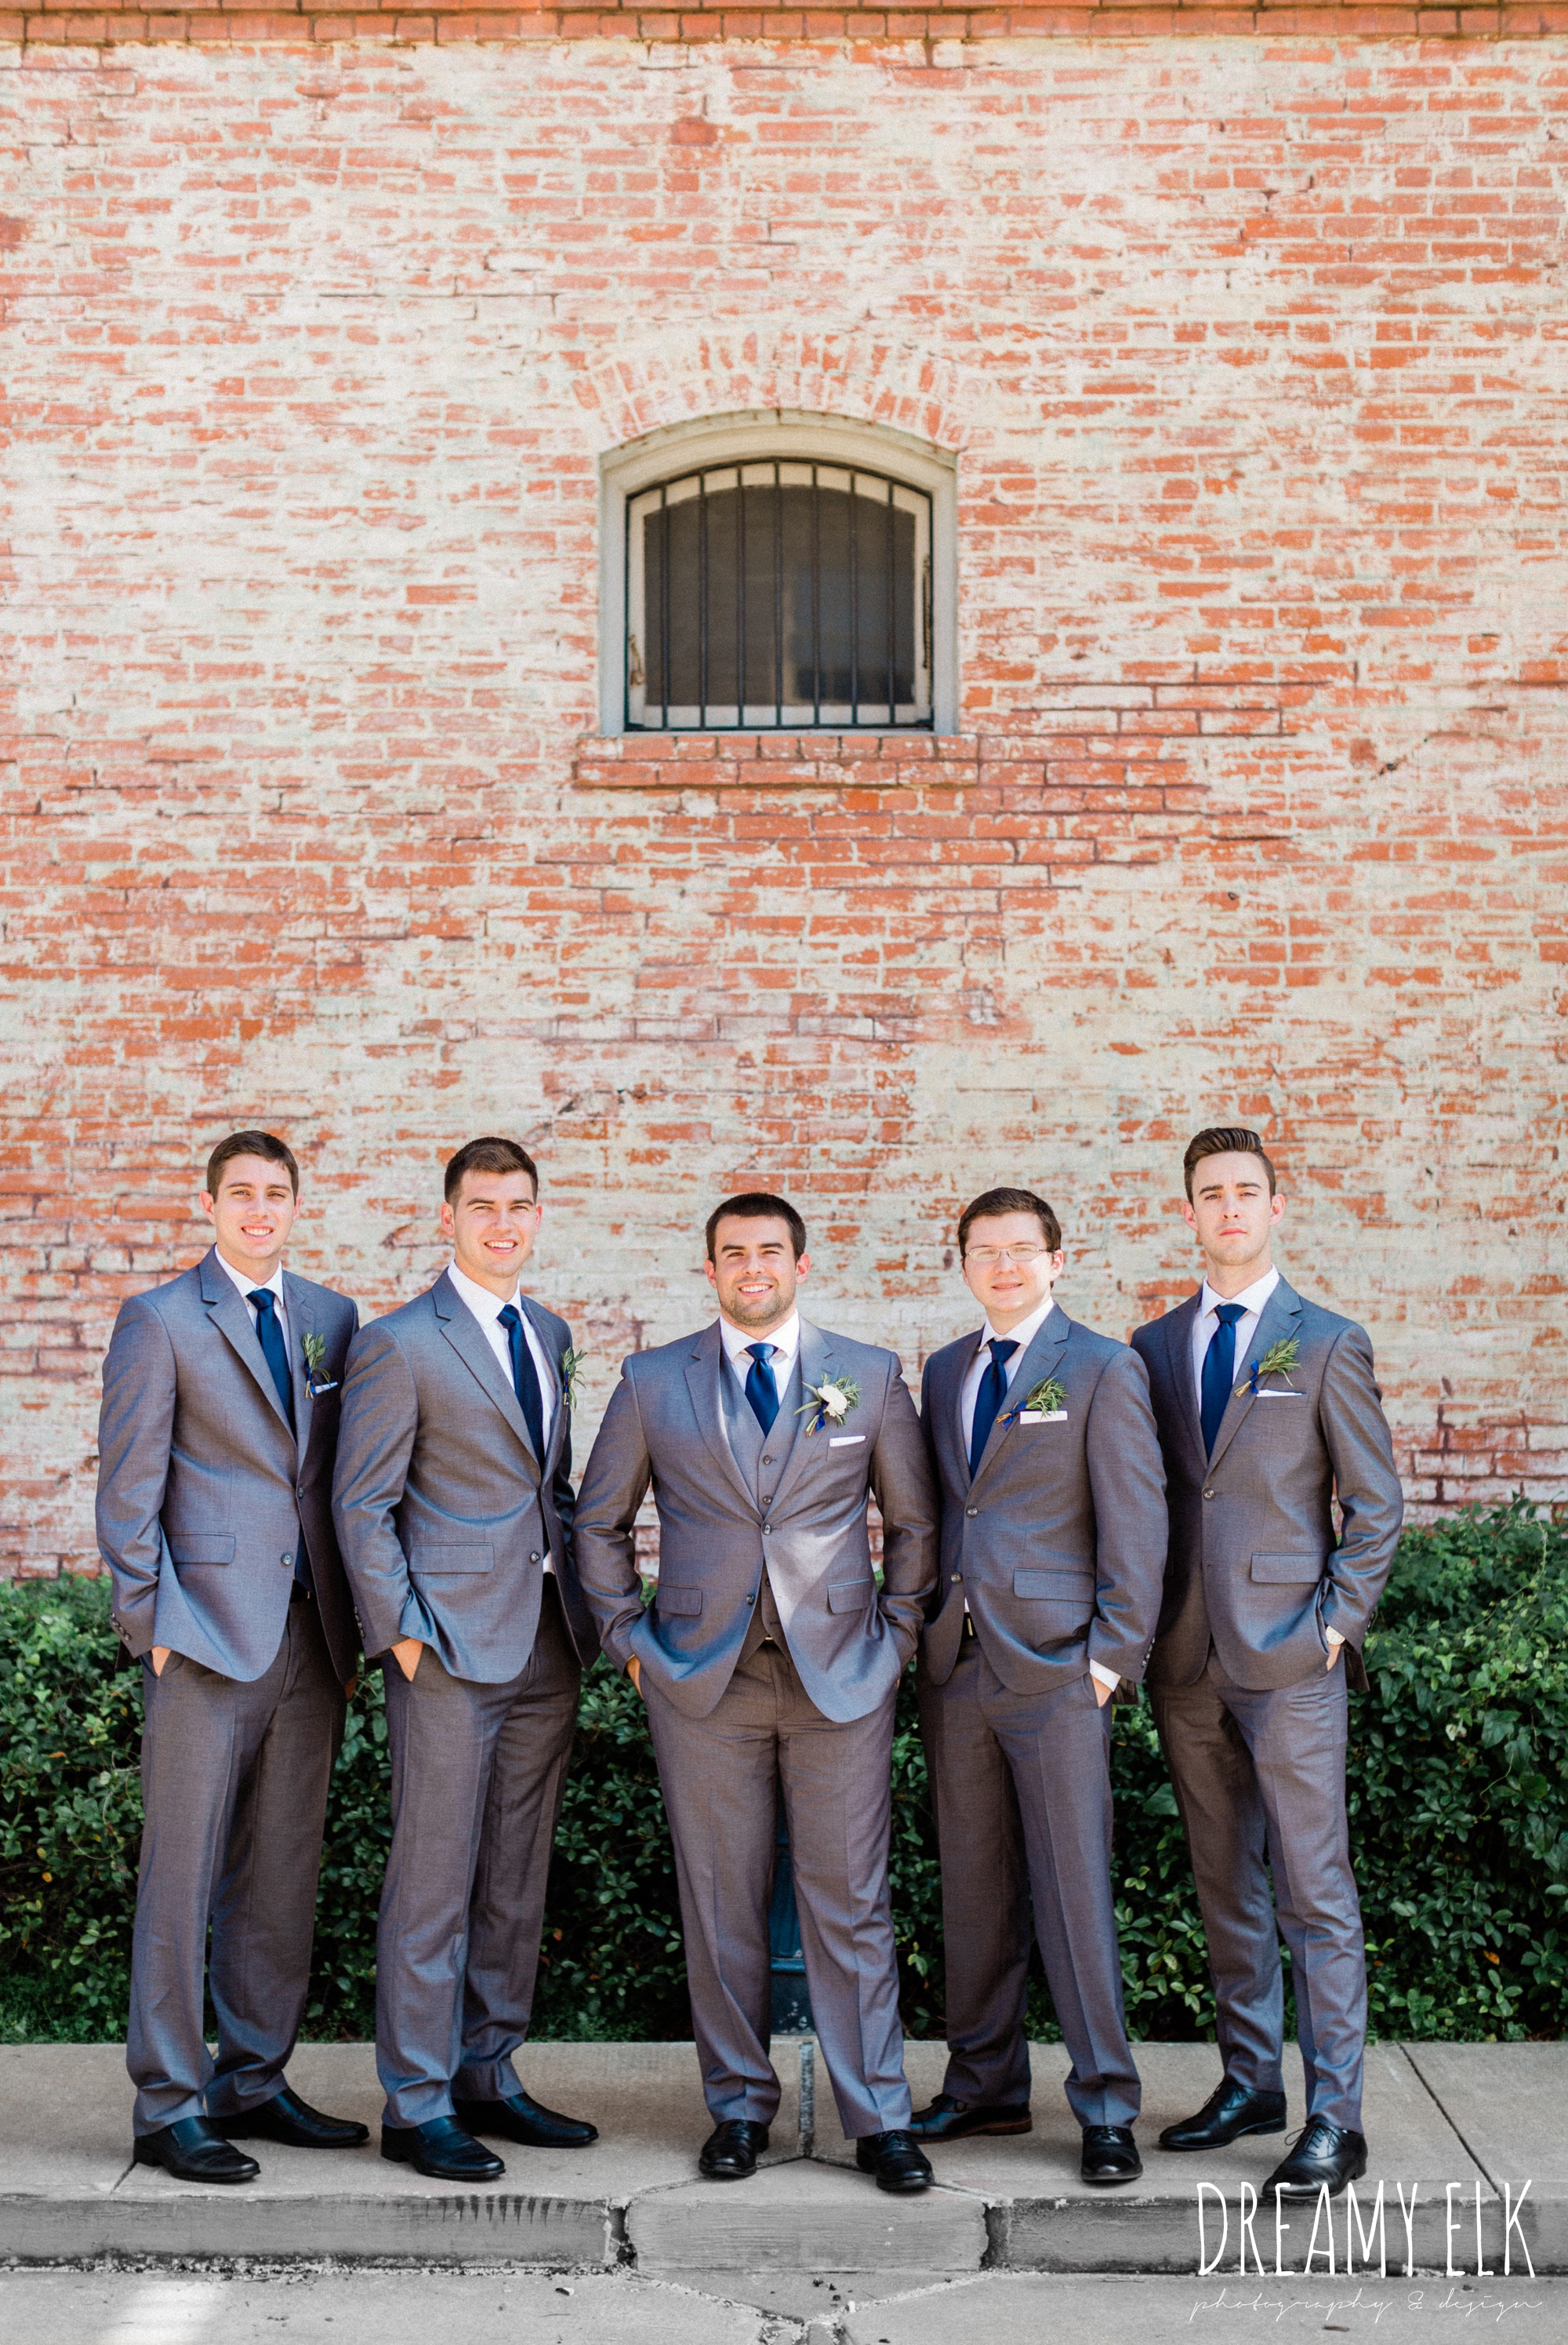 groom and groomsmen, gray suit navy tie, spring wedding photo college station texas, dreamy elk photography and design